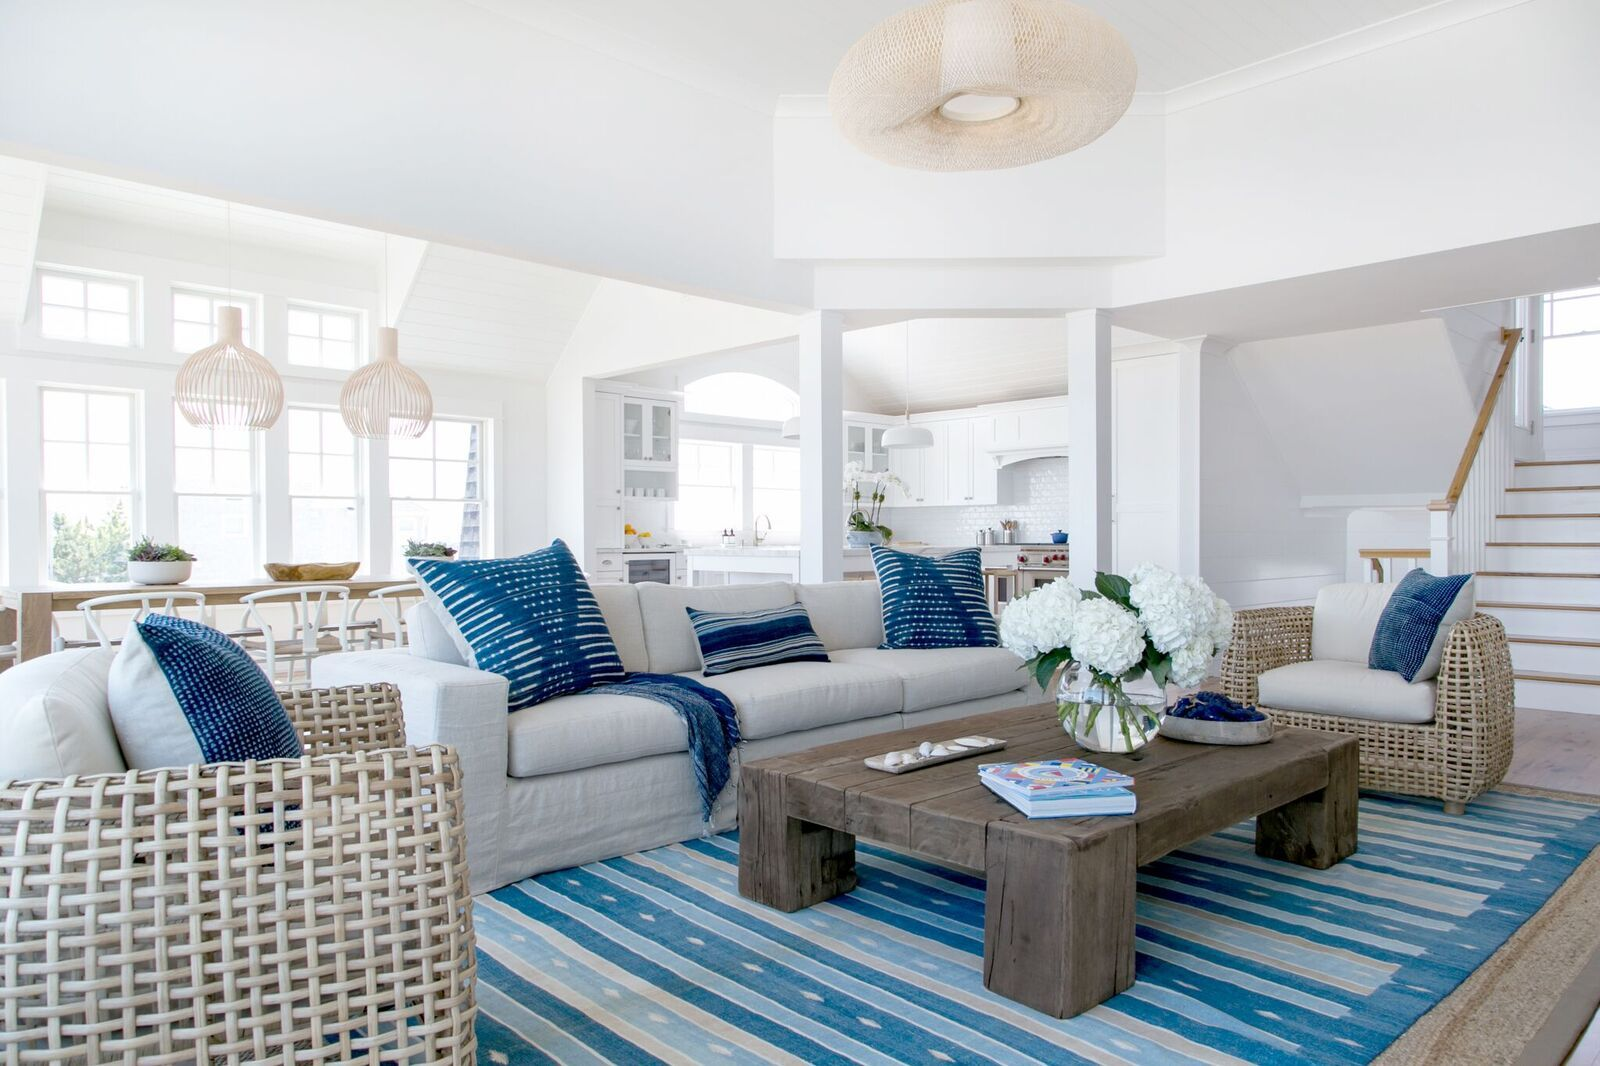 Tour a Breezy Beach House Inspired by Its Landscape | Famous ...